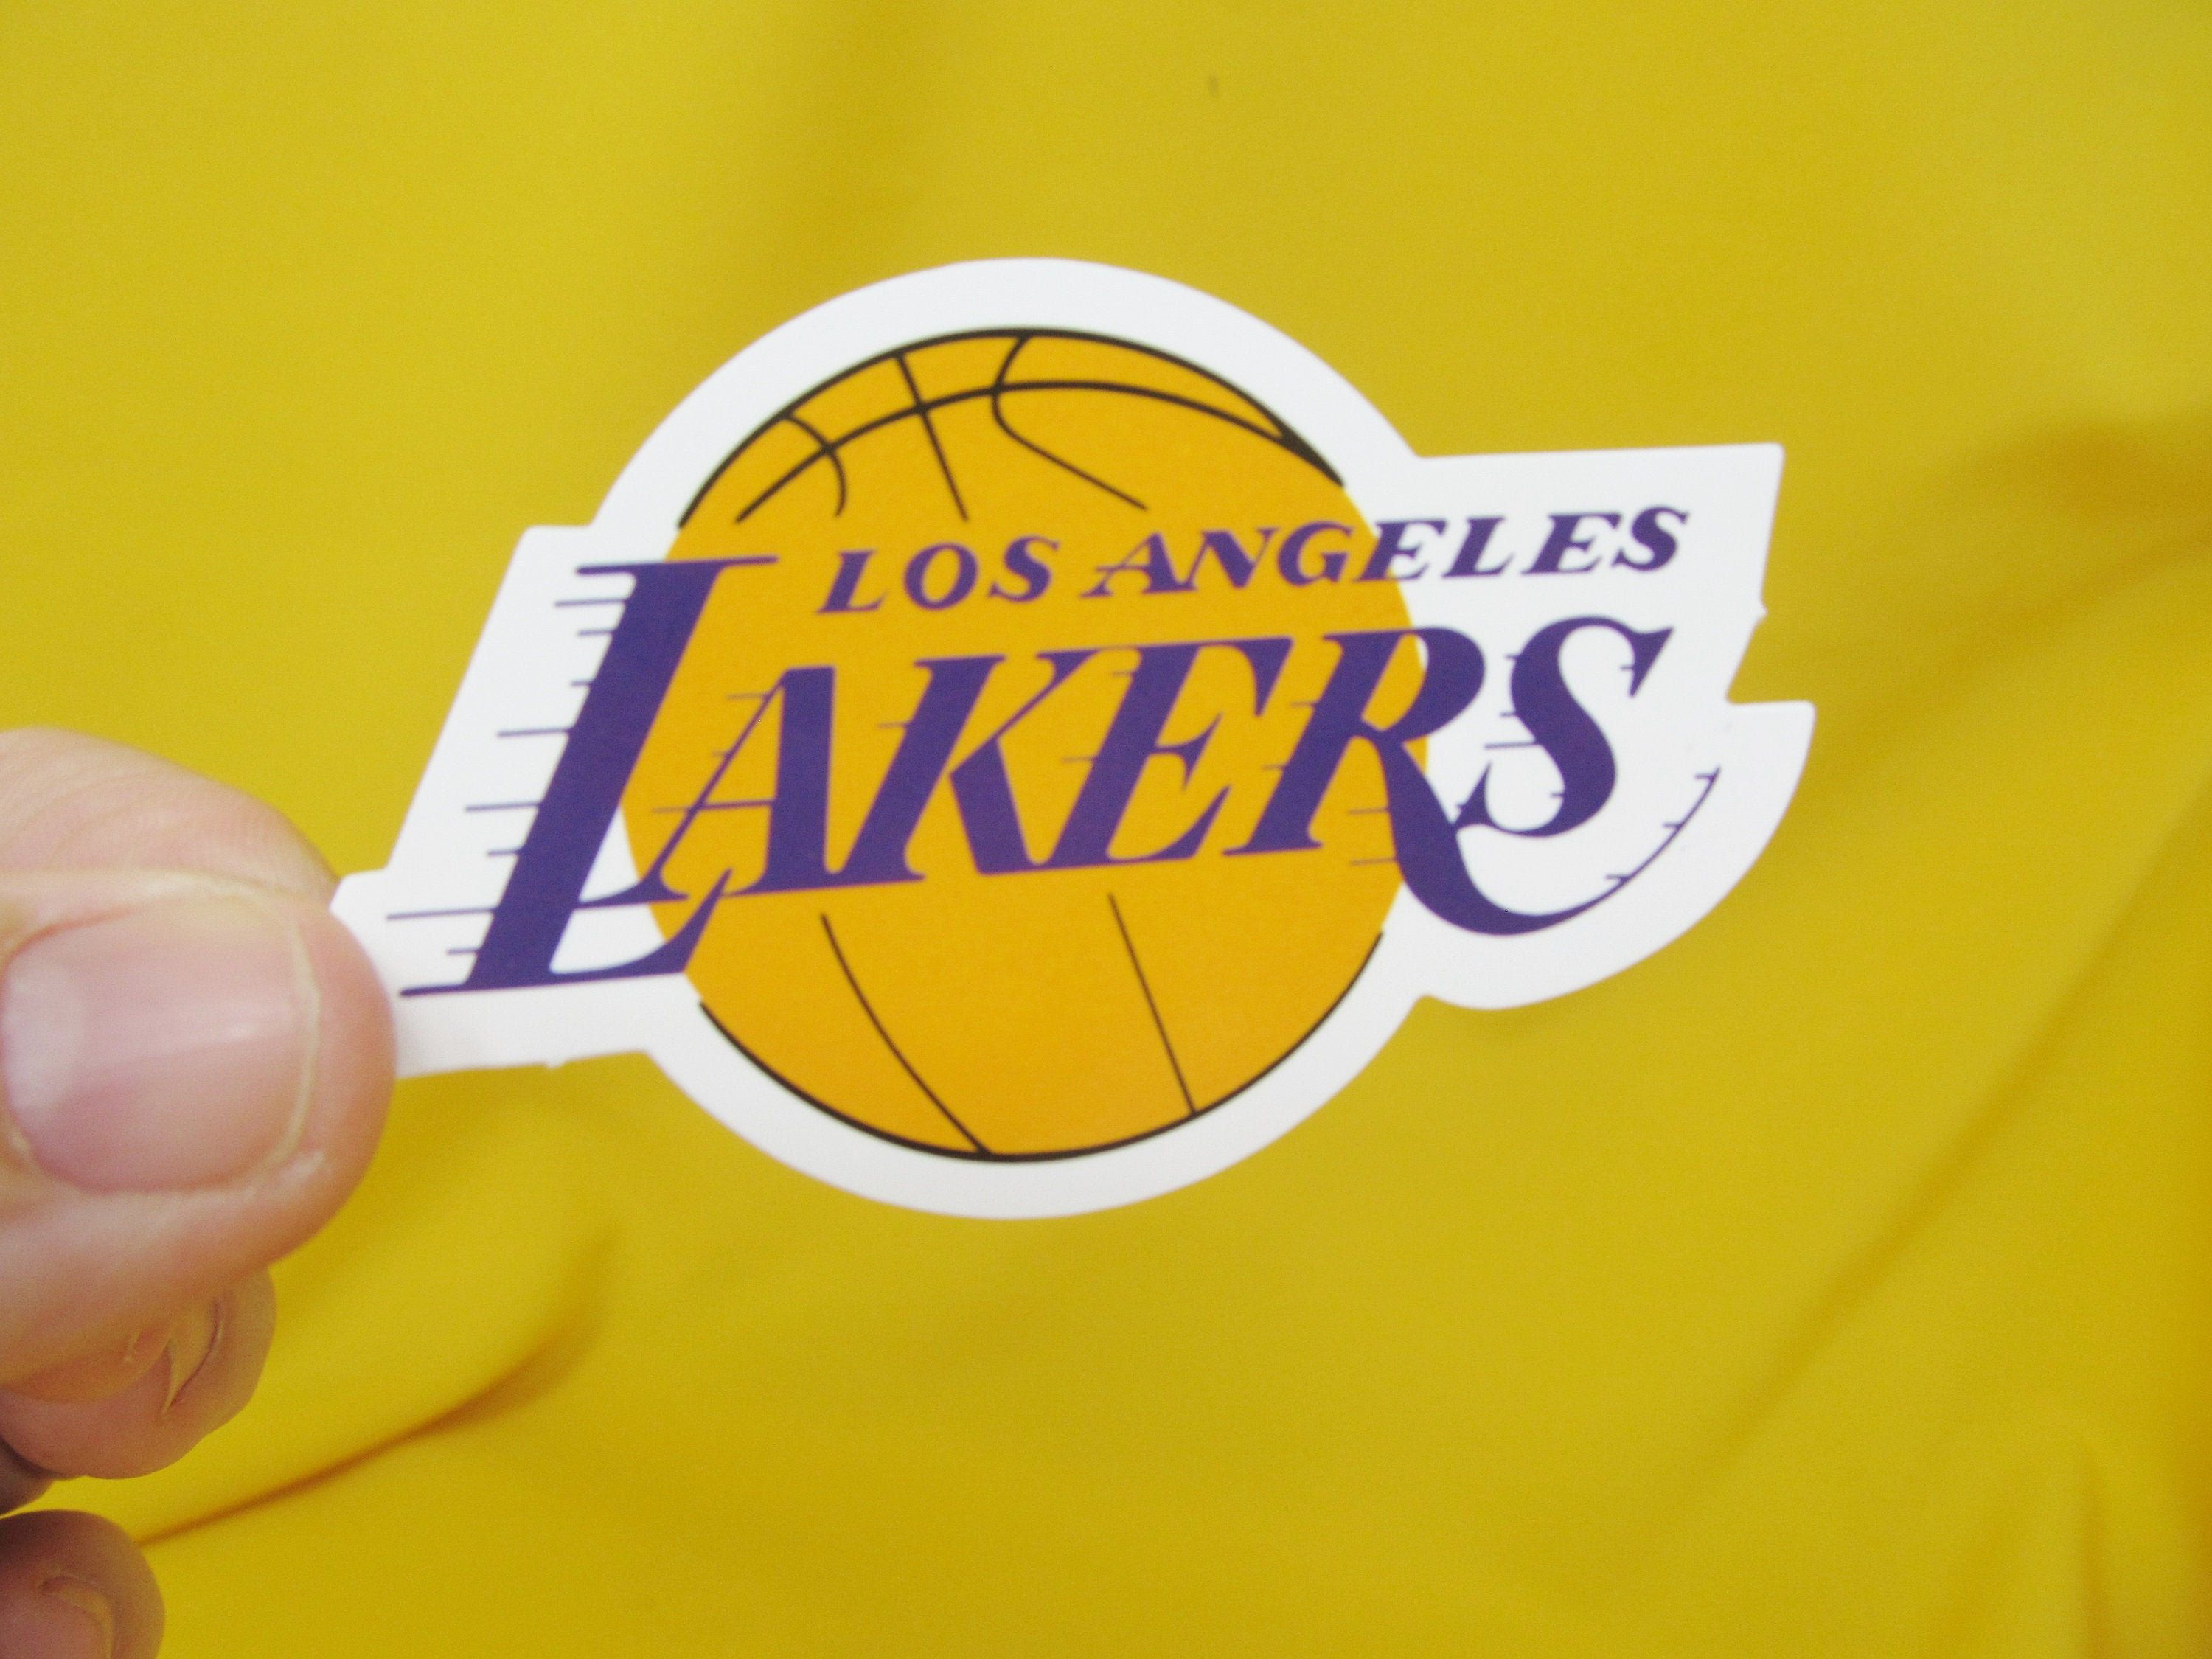 Los Angeles Lakers Sticker Great For Your Laptop Etsy Los Angeles New Sticker Los Angeles Lakers [ 2250 x 3000 Pixel ]